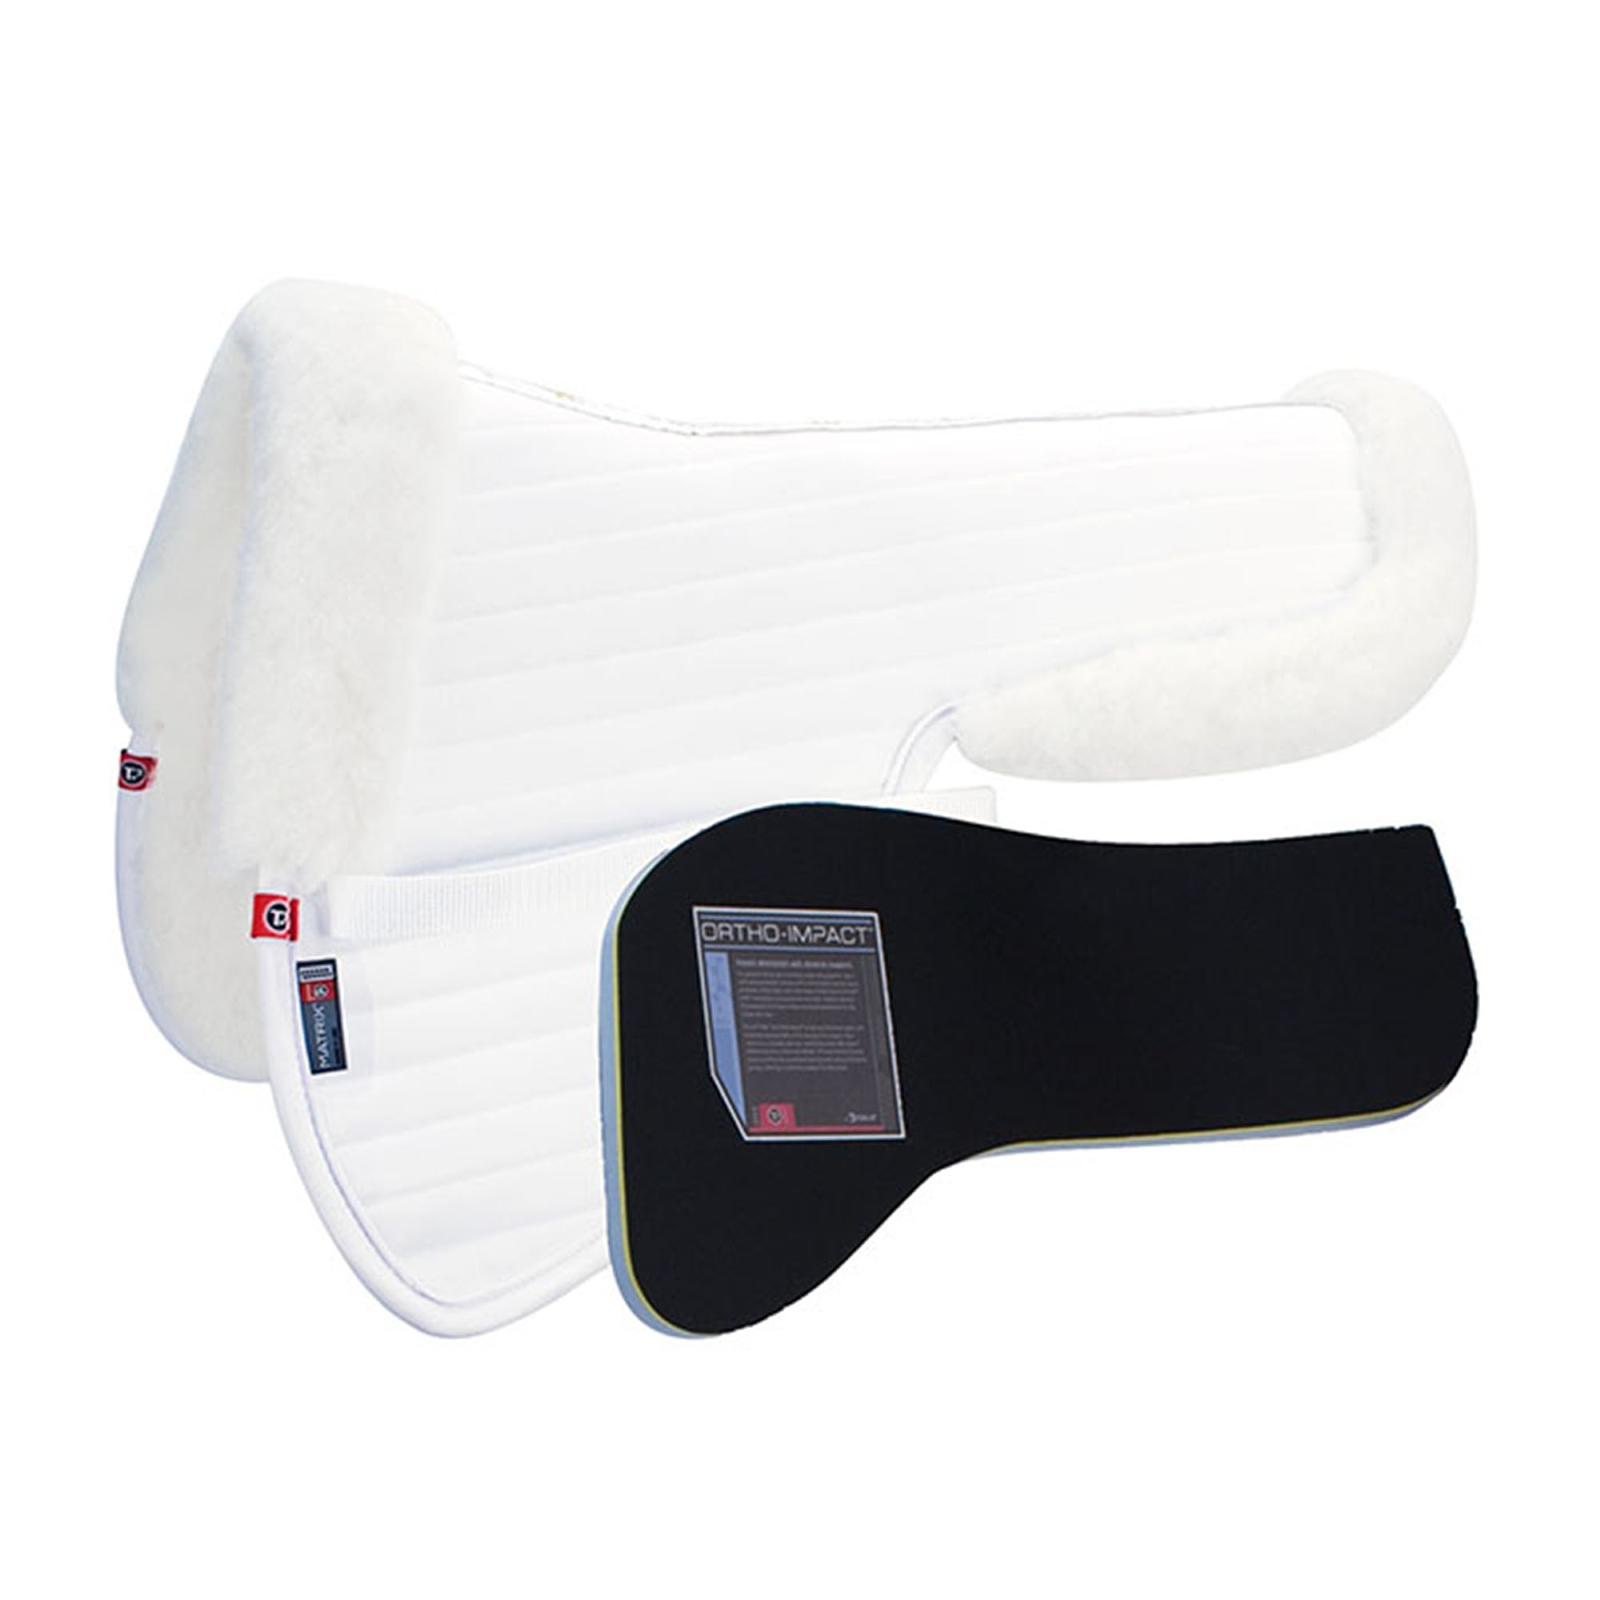 Matrix T3 Ergonomic CoolBack Half Pad with Ortho-Impact Inserts